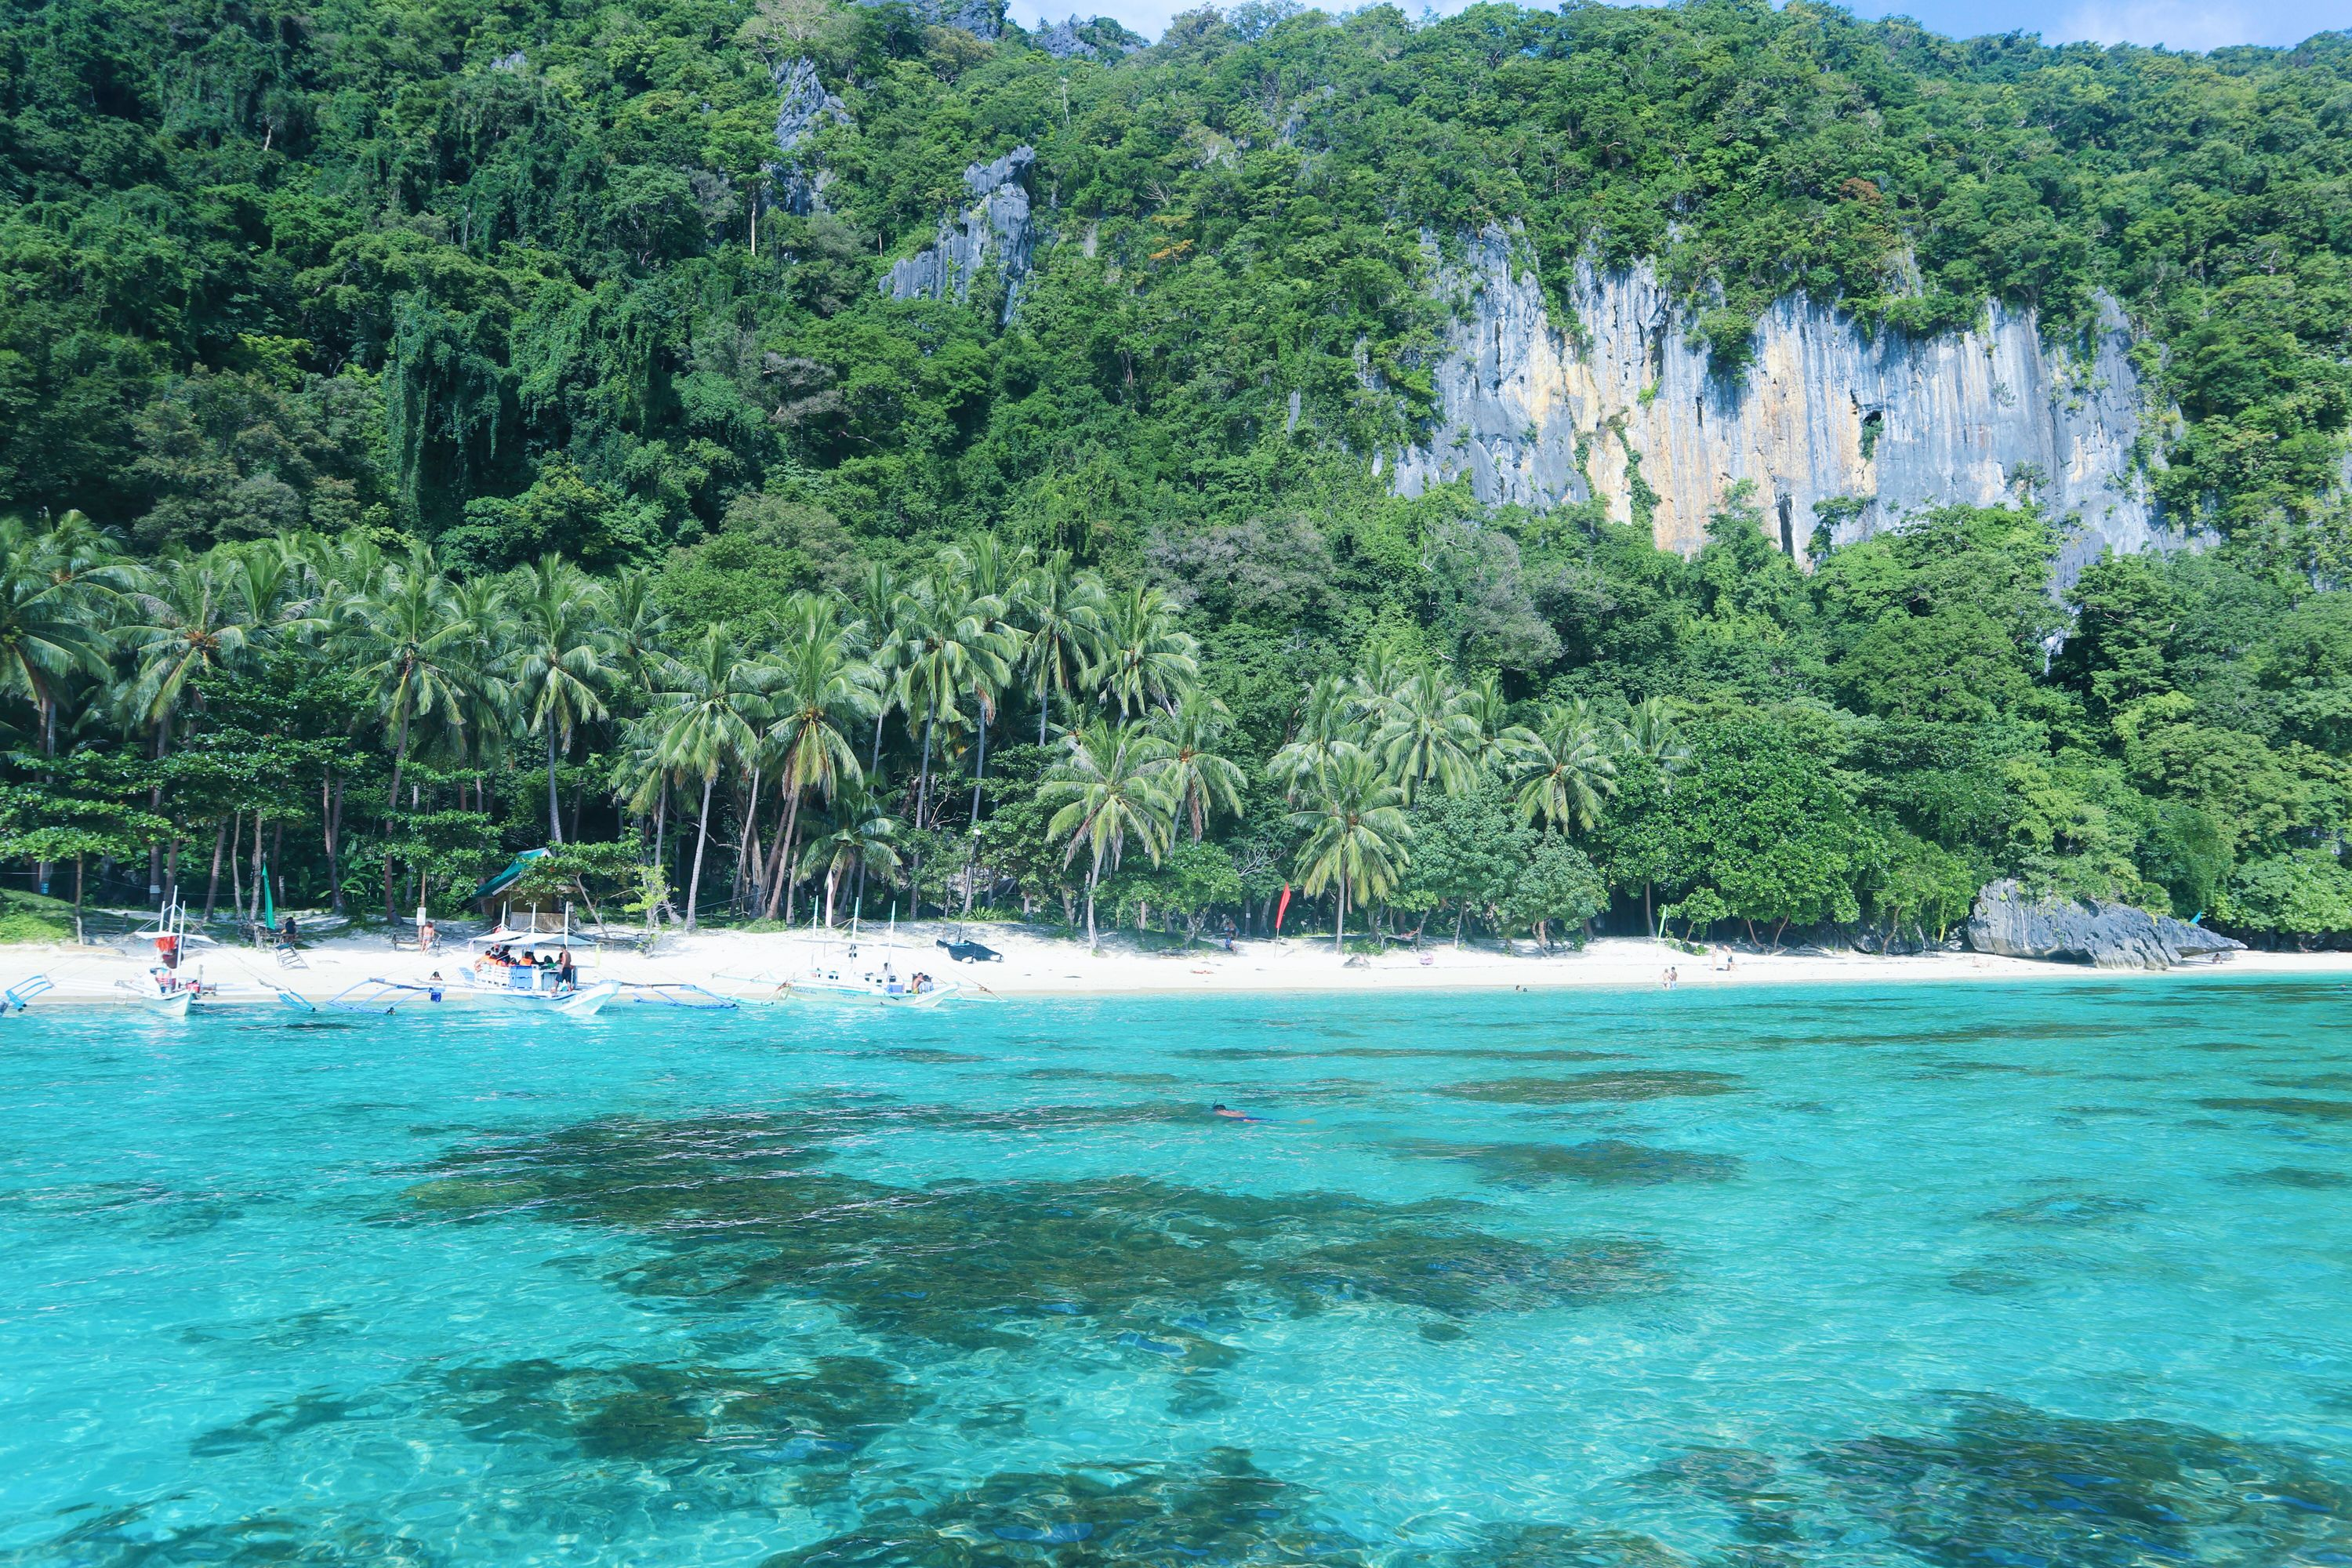 yeap, this is heaven, such an amazing beach, the color of the water is unbelievable. Get real pearls here!